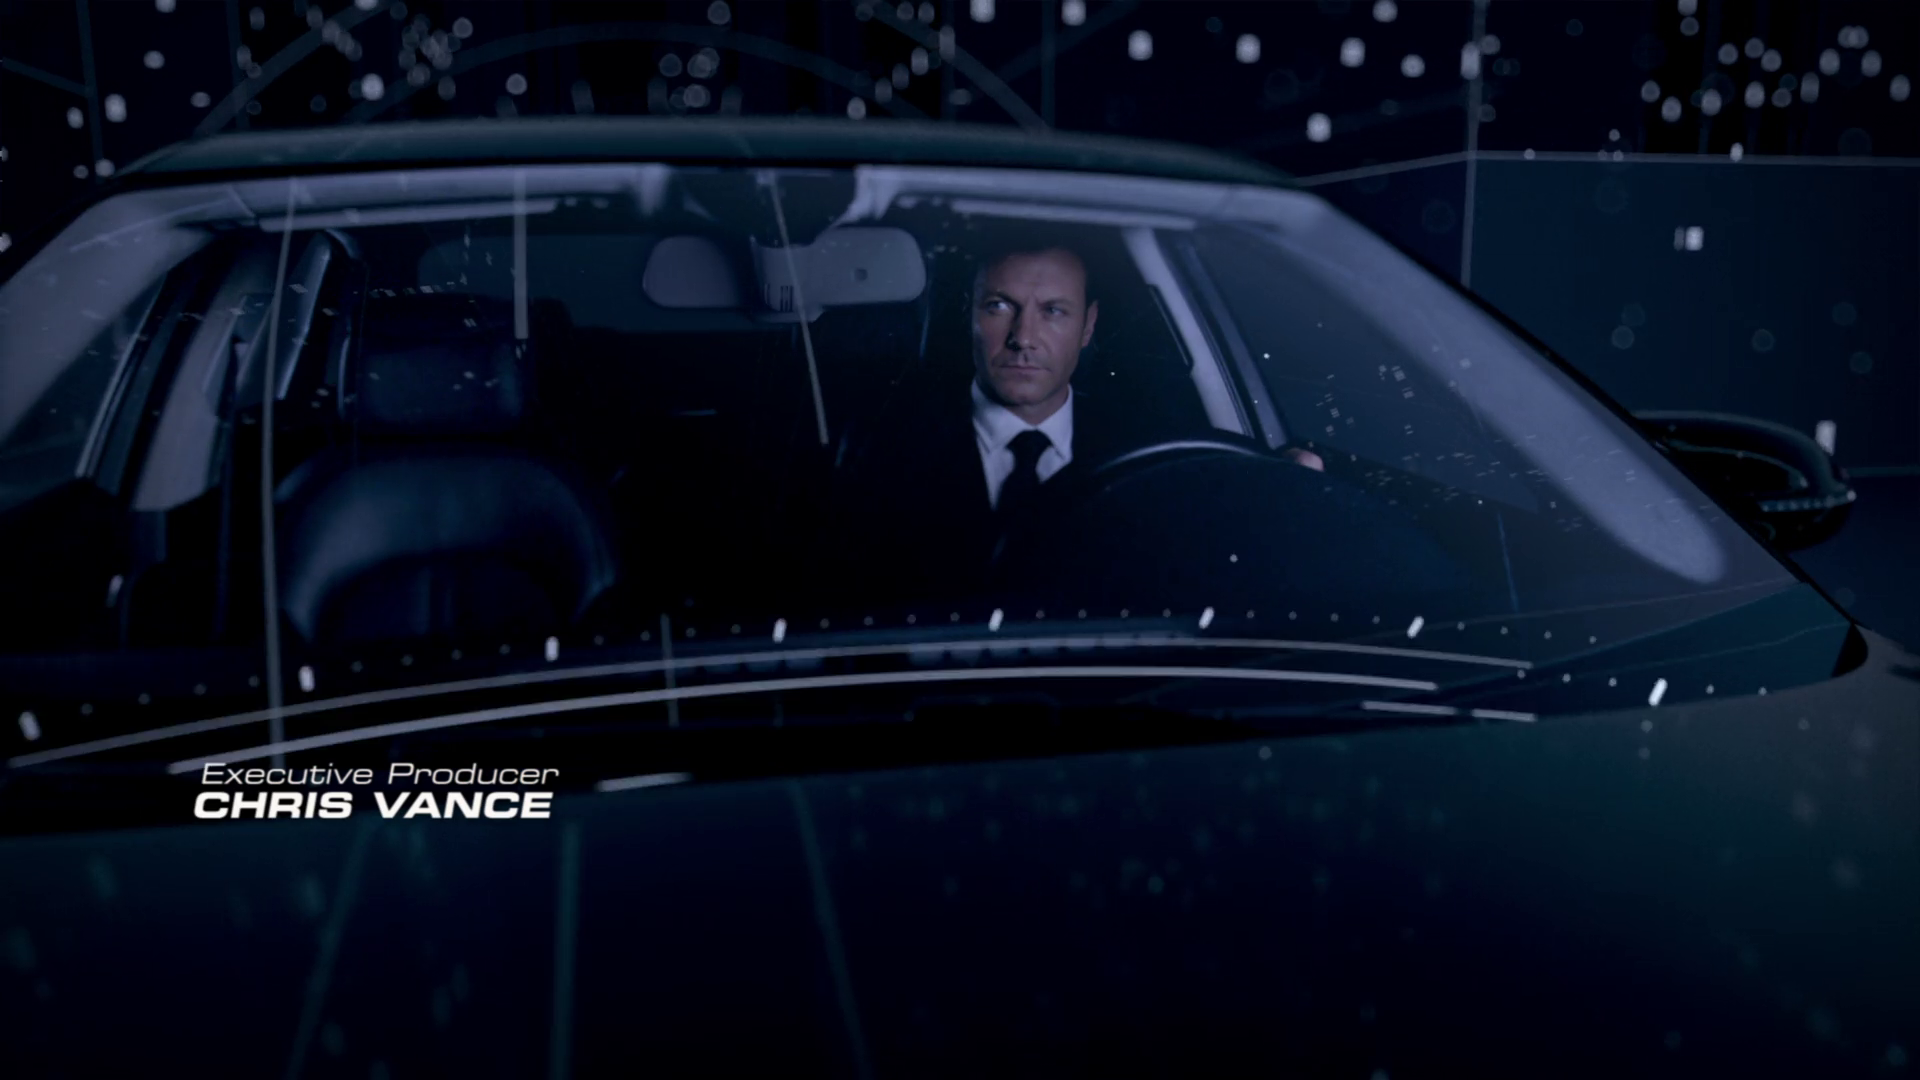 The Transporter Temporada 2 1080p WEB-DL Multi Audio & Subs